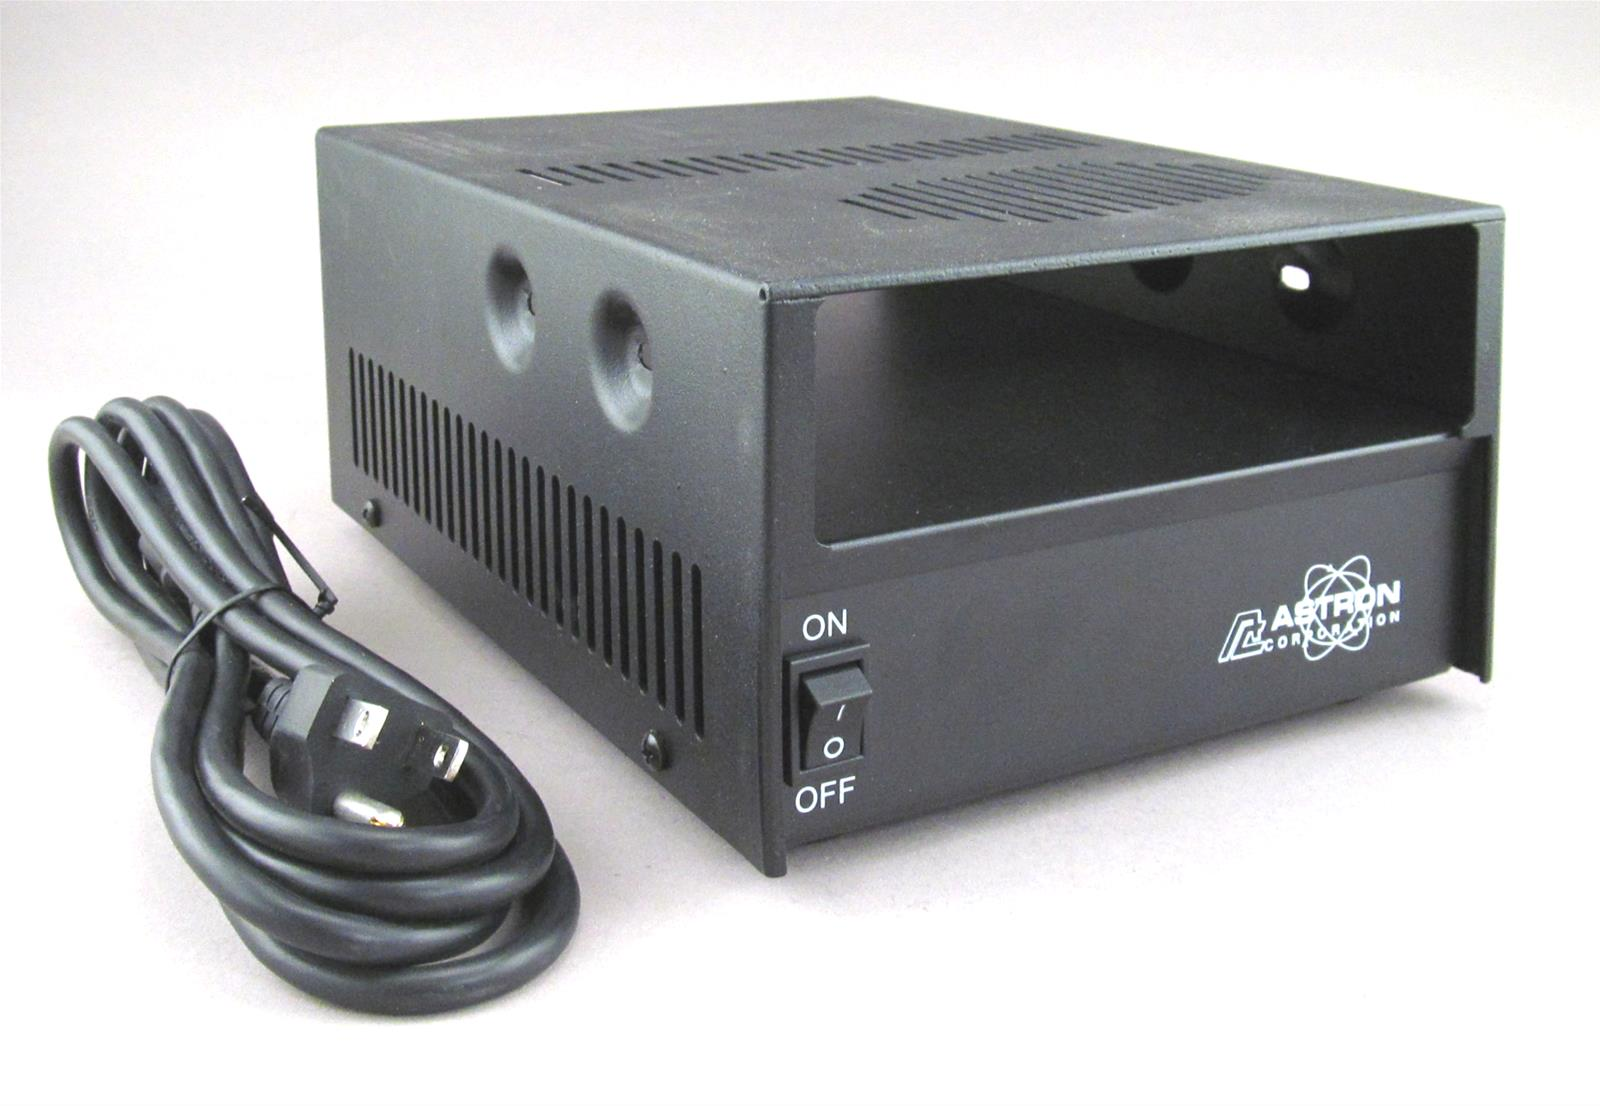 Astron Ss Series Switching Power Supplies 10icf S Free Shipping On Most Orders Over 99 At Dx Engineering